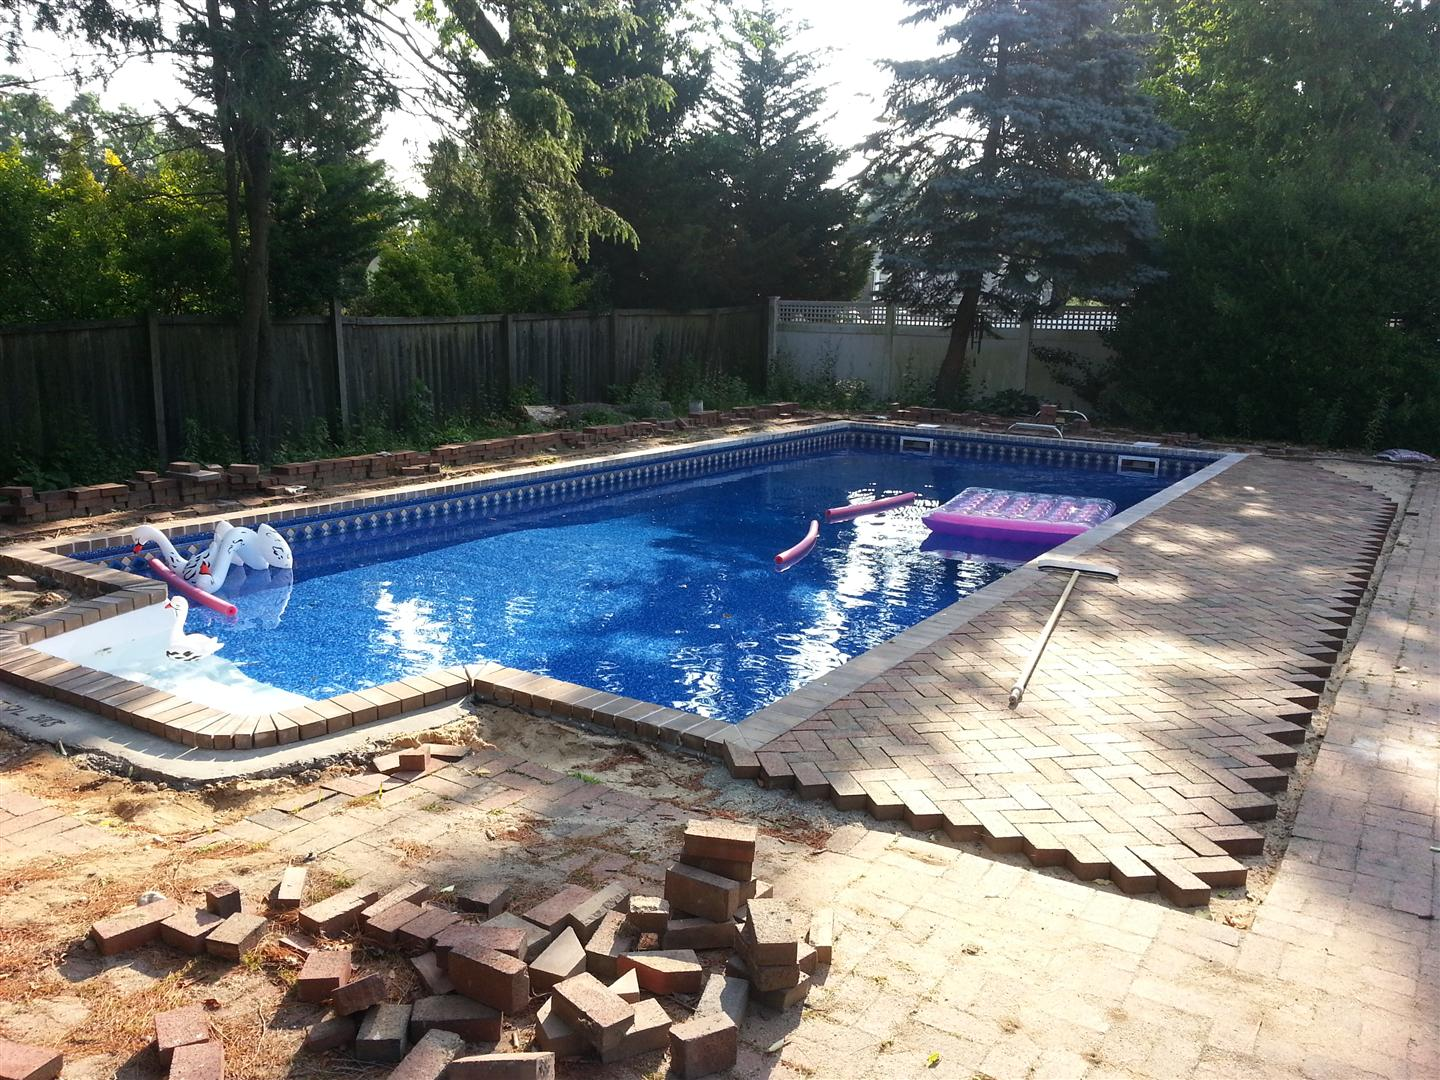 diy ig rehab, cement walls, vinyl liner - pool filled!! [archive